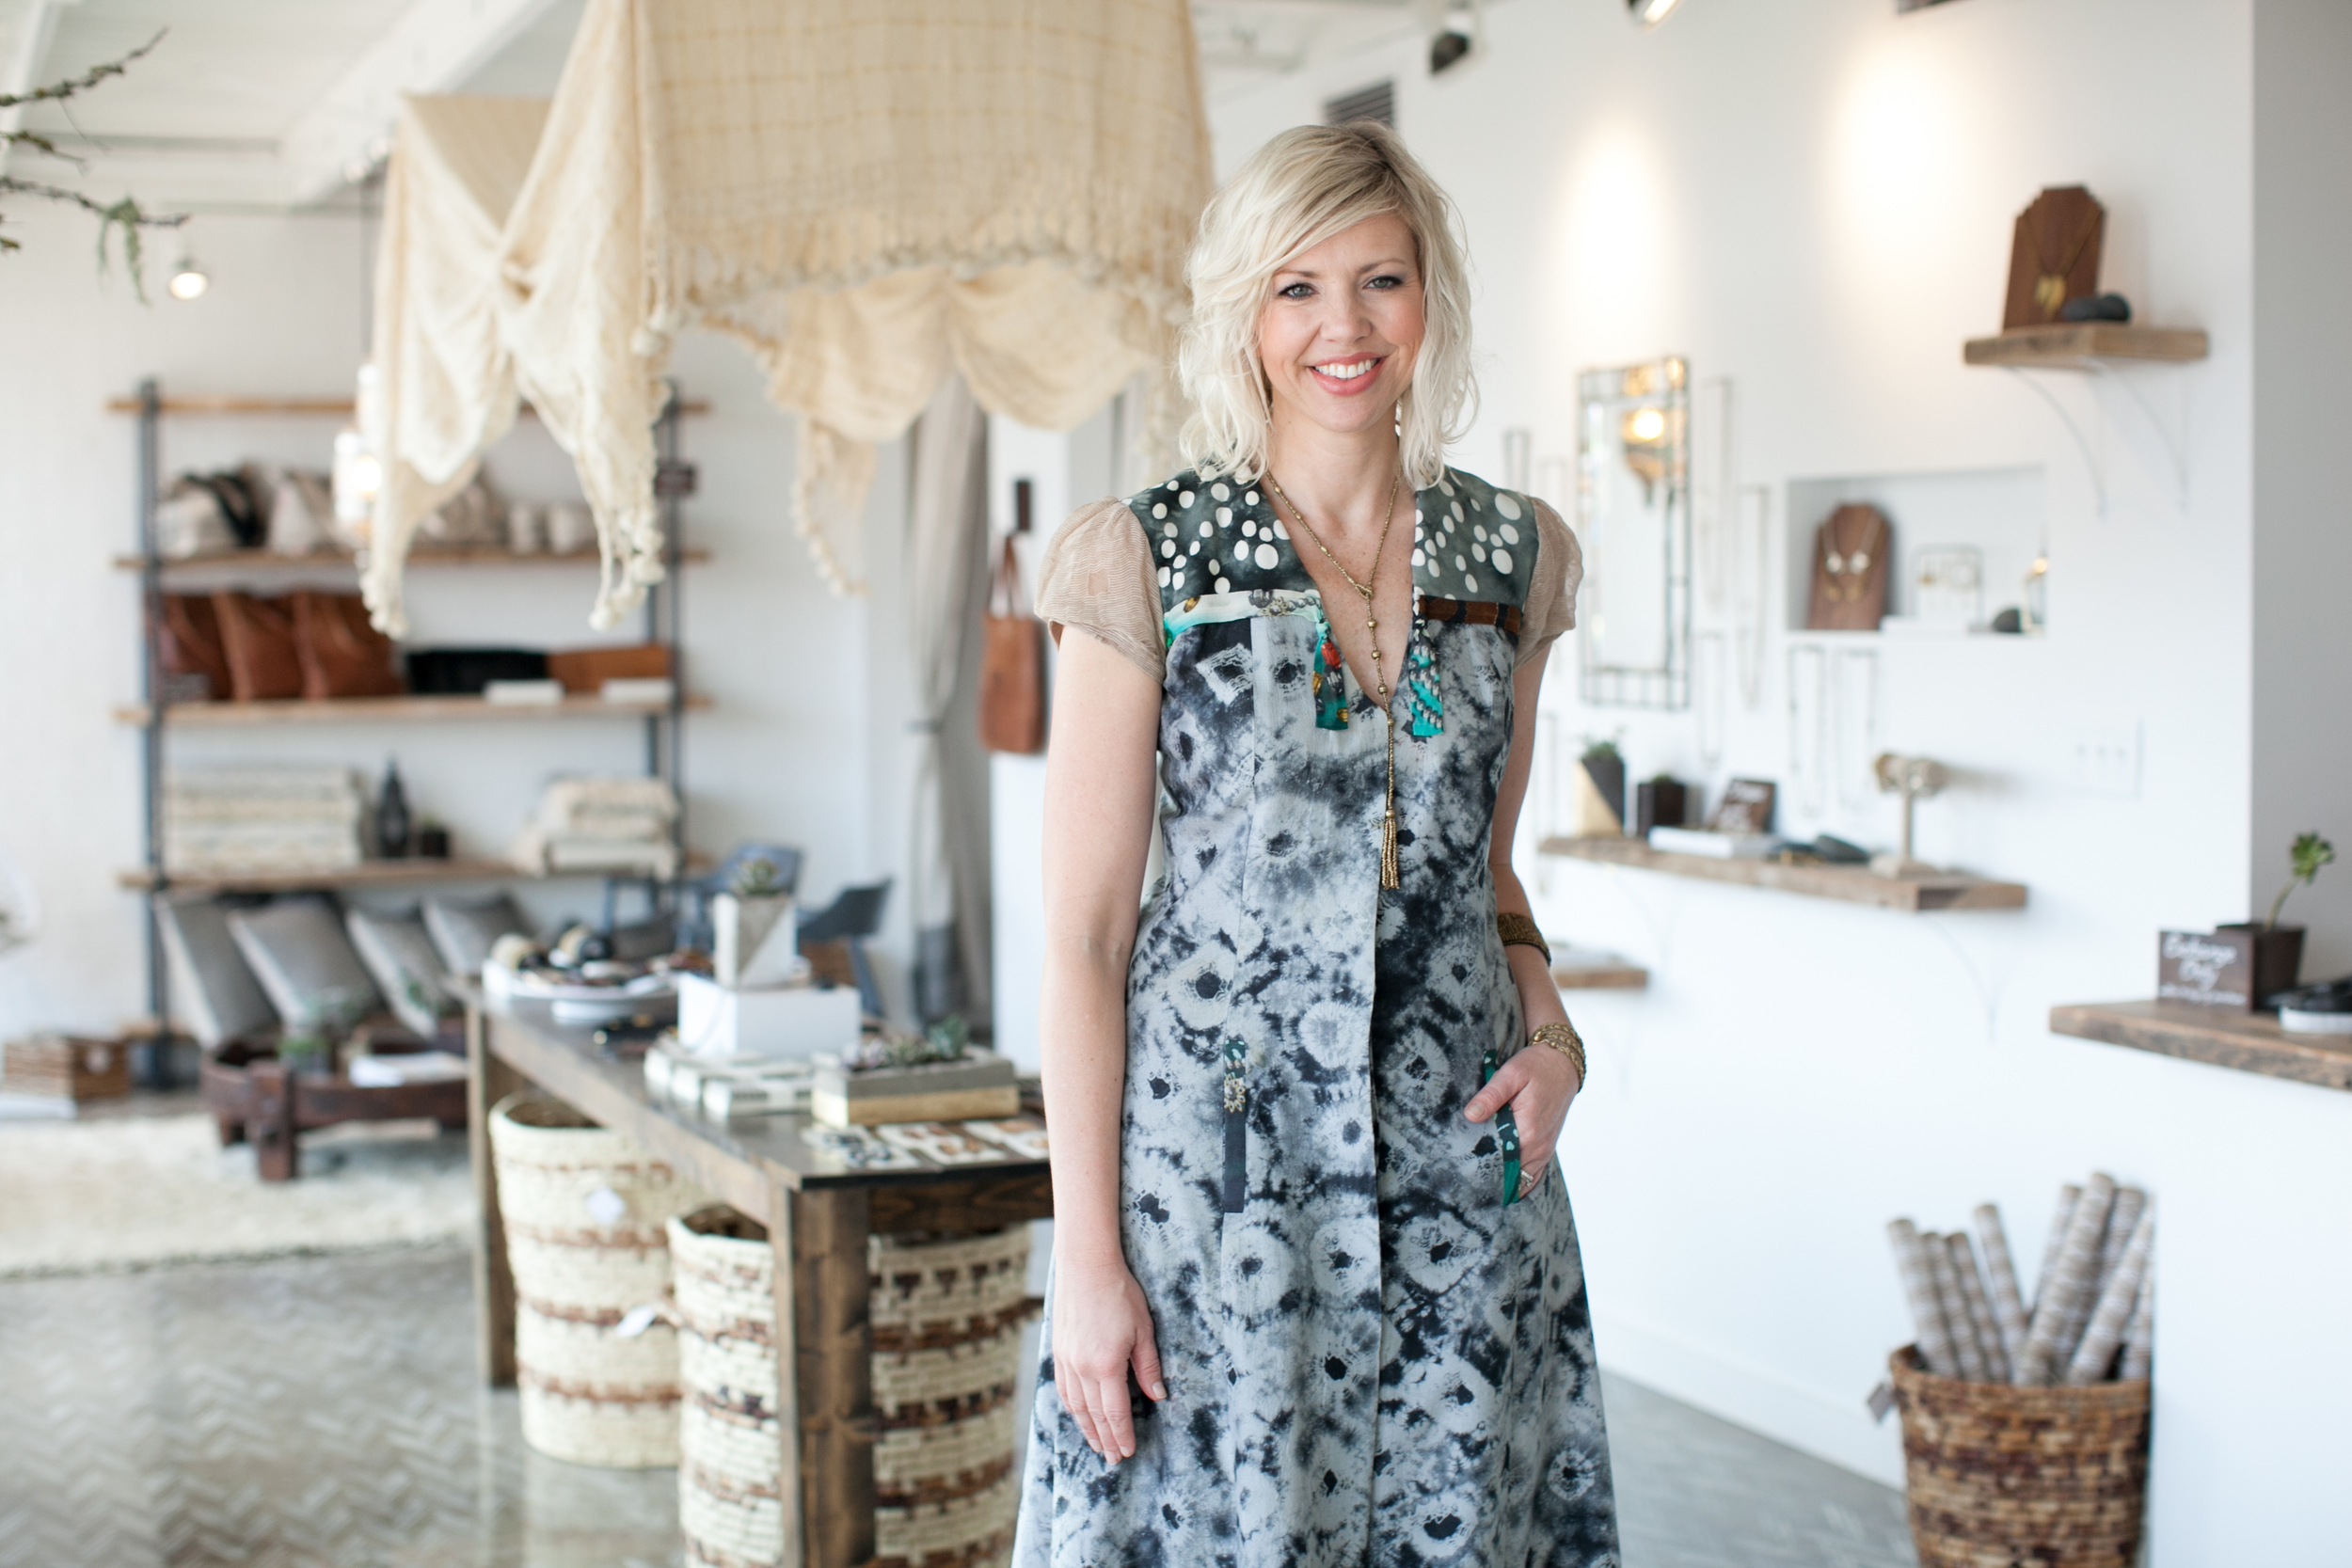 Kirsten photographed by  Kate Stafford  at the grand opening of the Raven + Lily Storefront Spring 2014